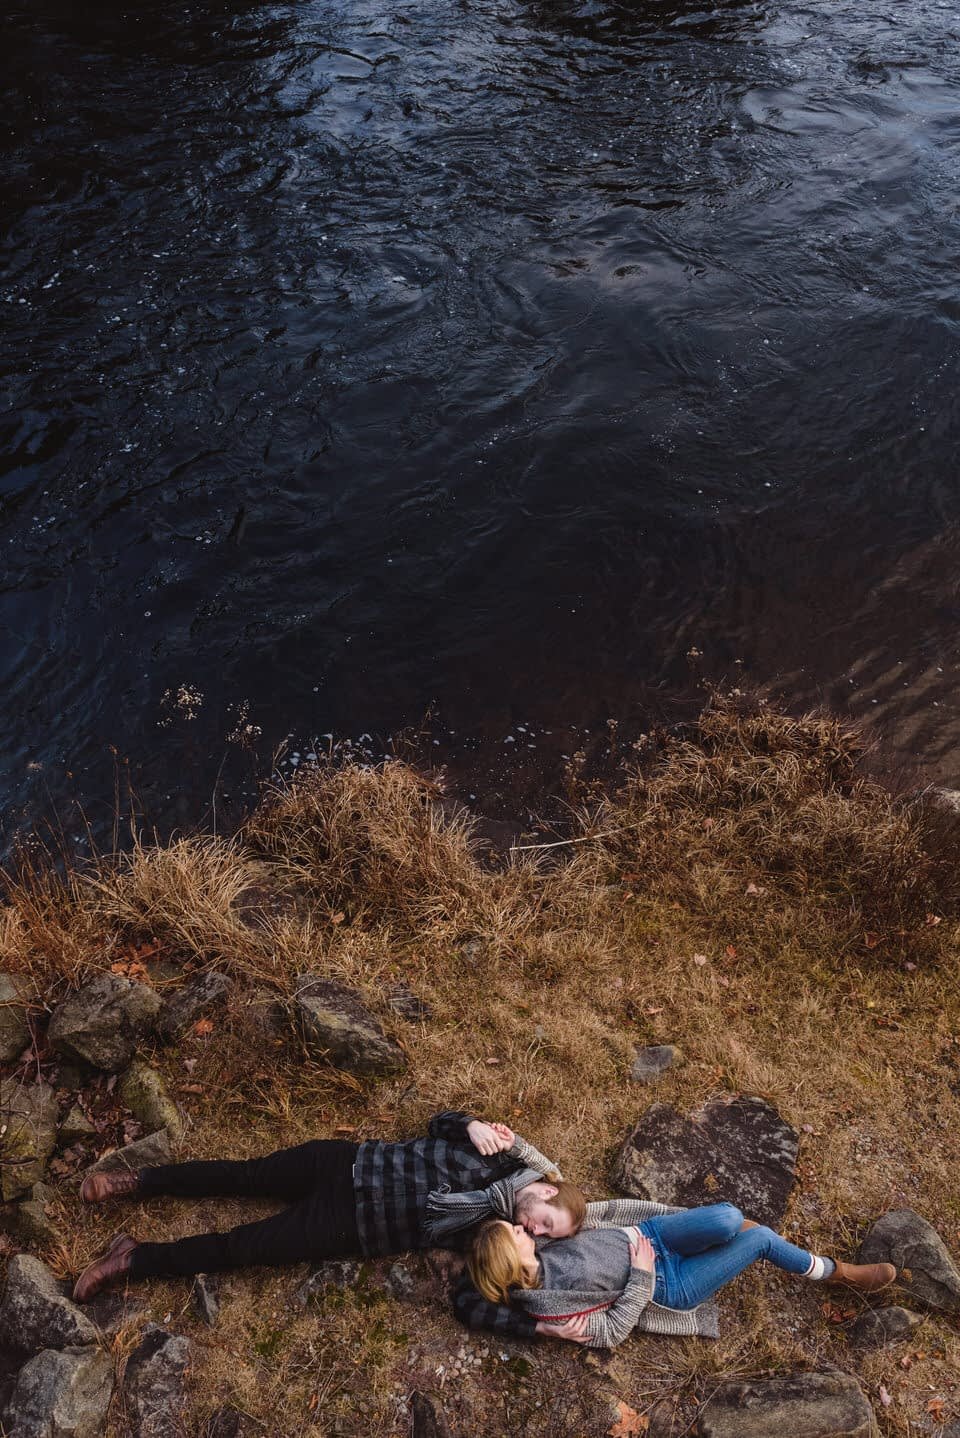 Couple lying down in the brown grass near a dark cold river